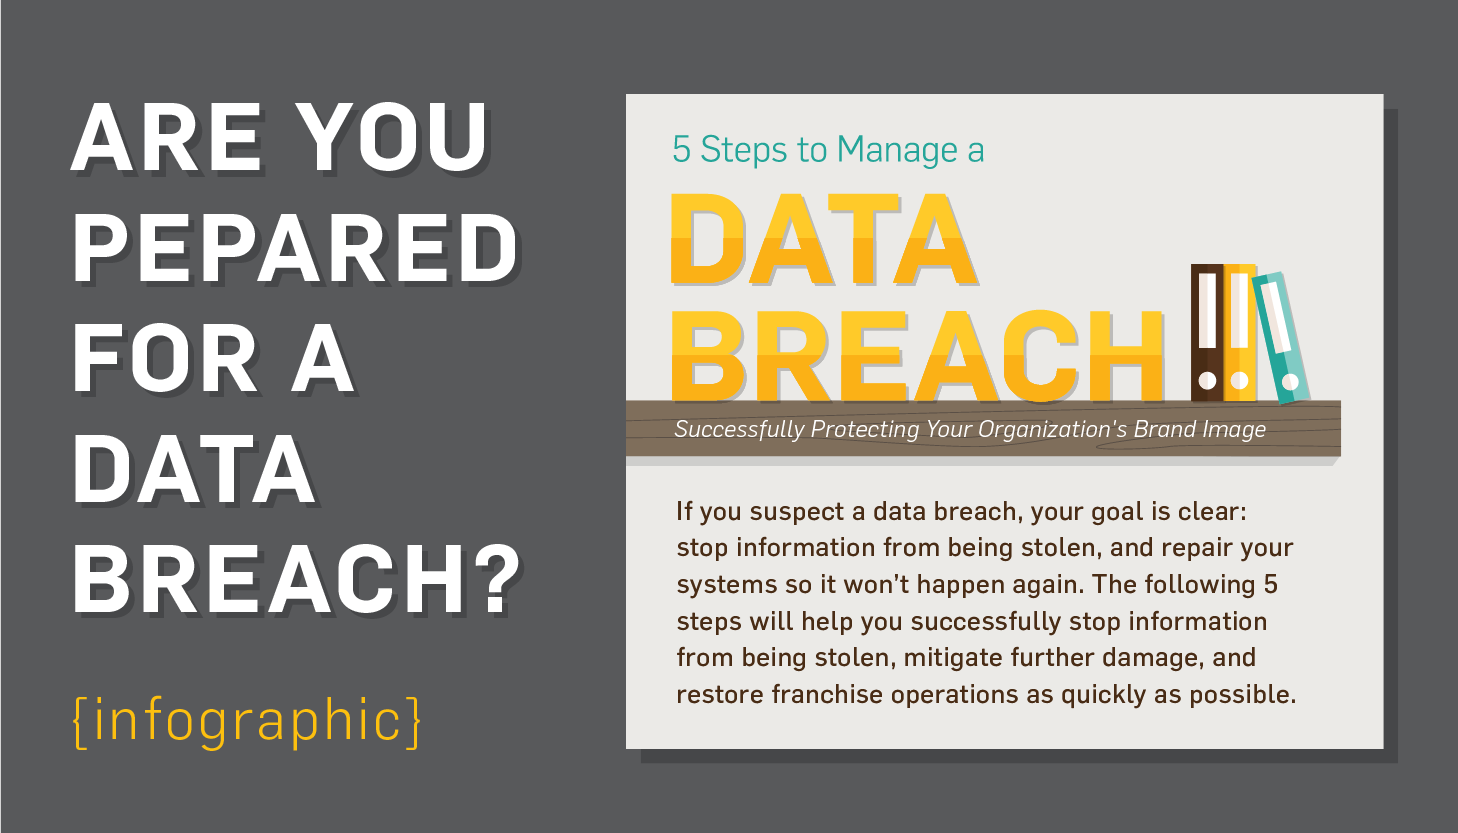 How to Manage a Data Breach: 5 Steps to Keep Your Business Safe